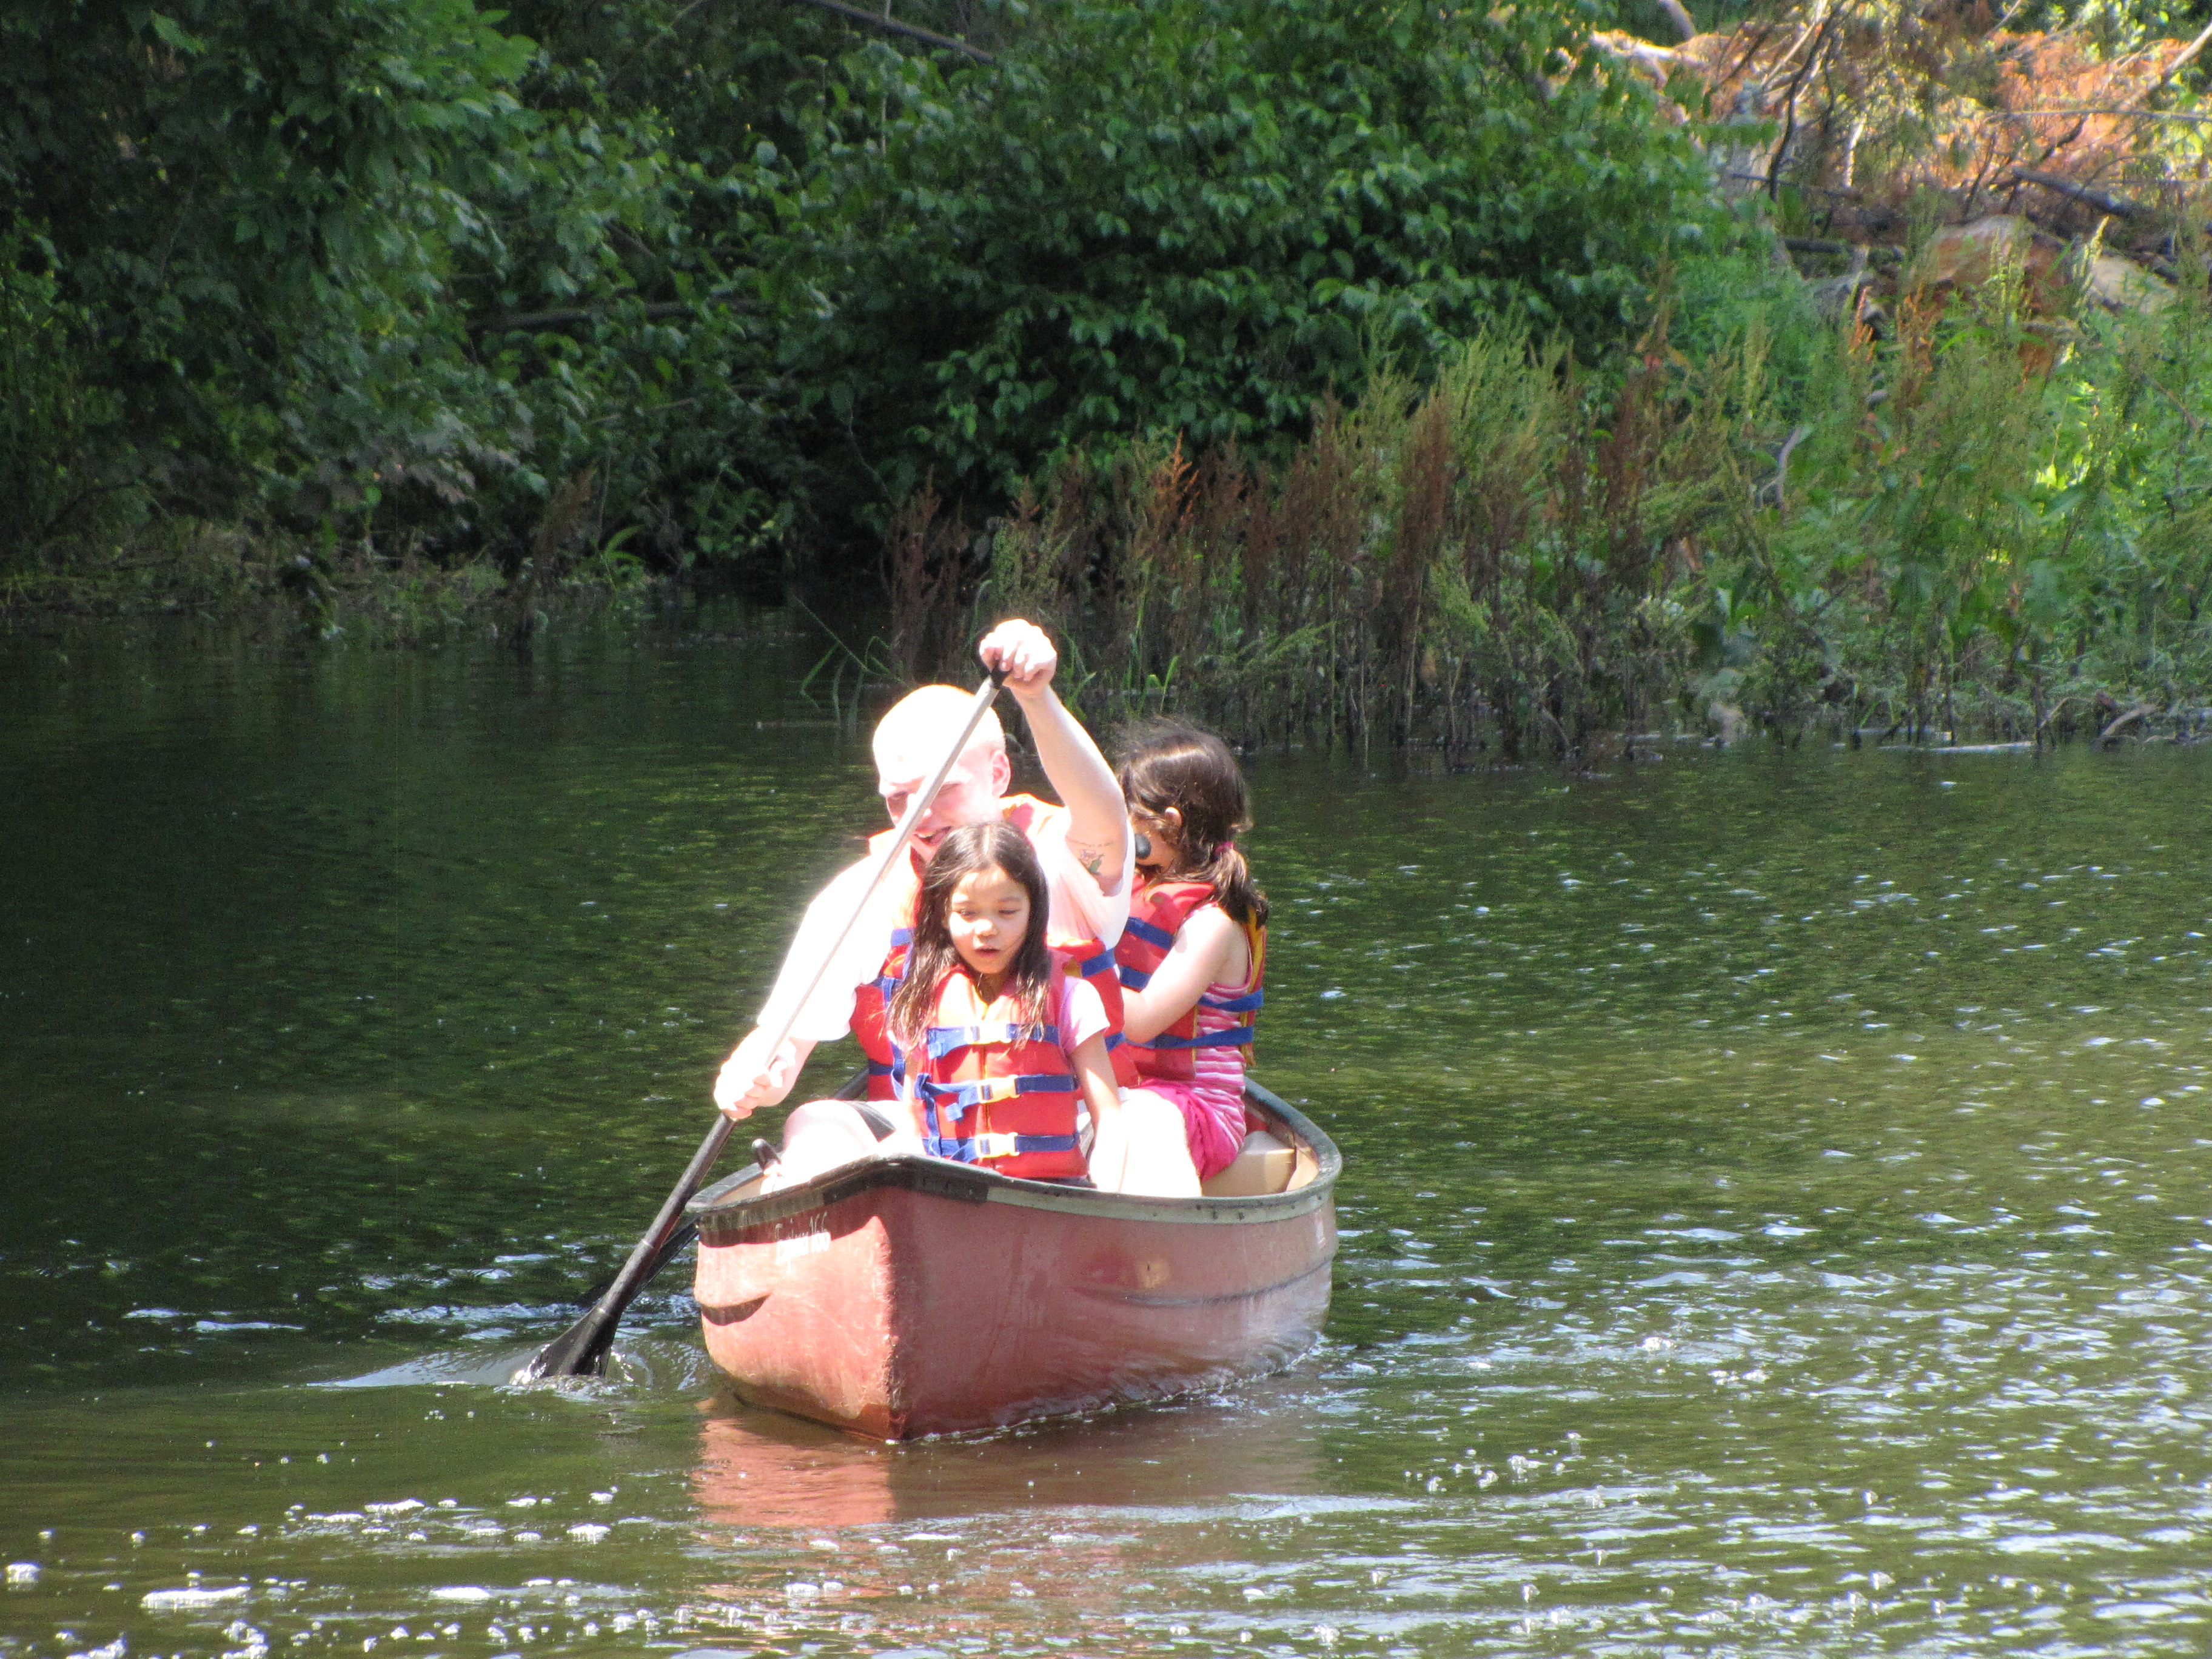 Canoeing on the lake.